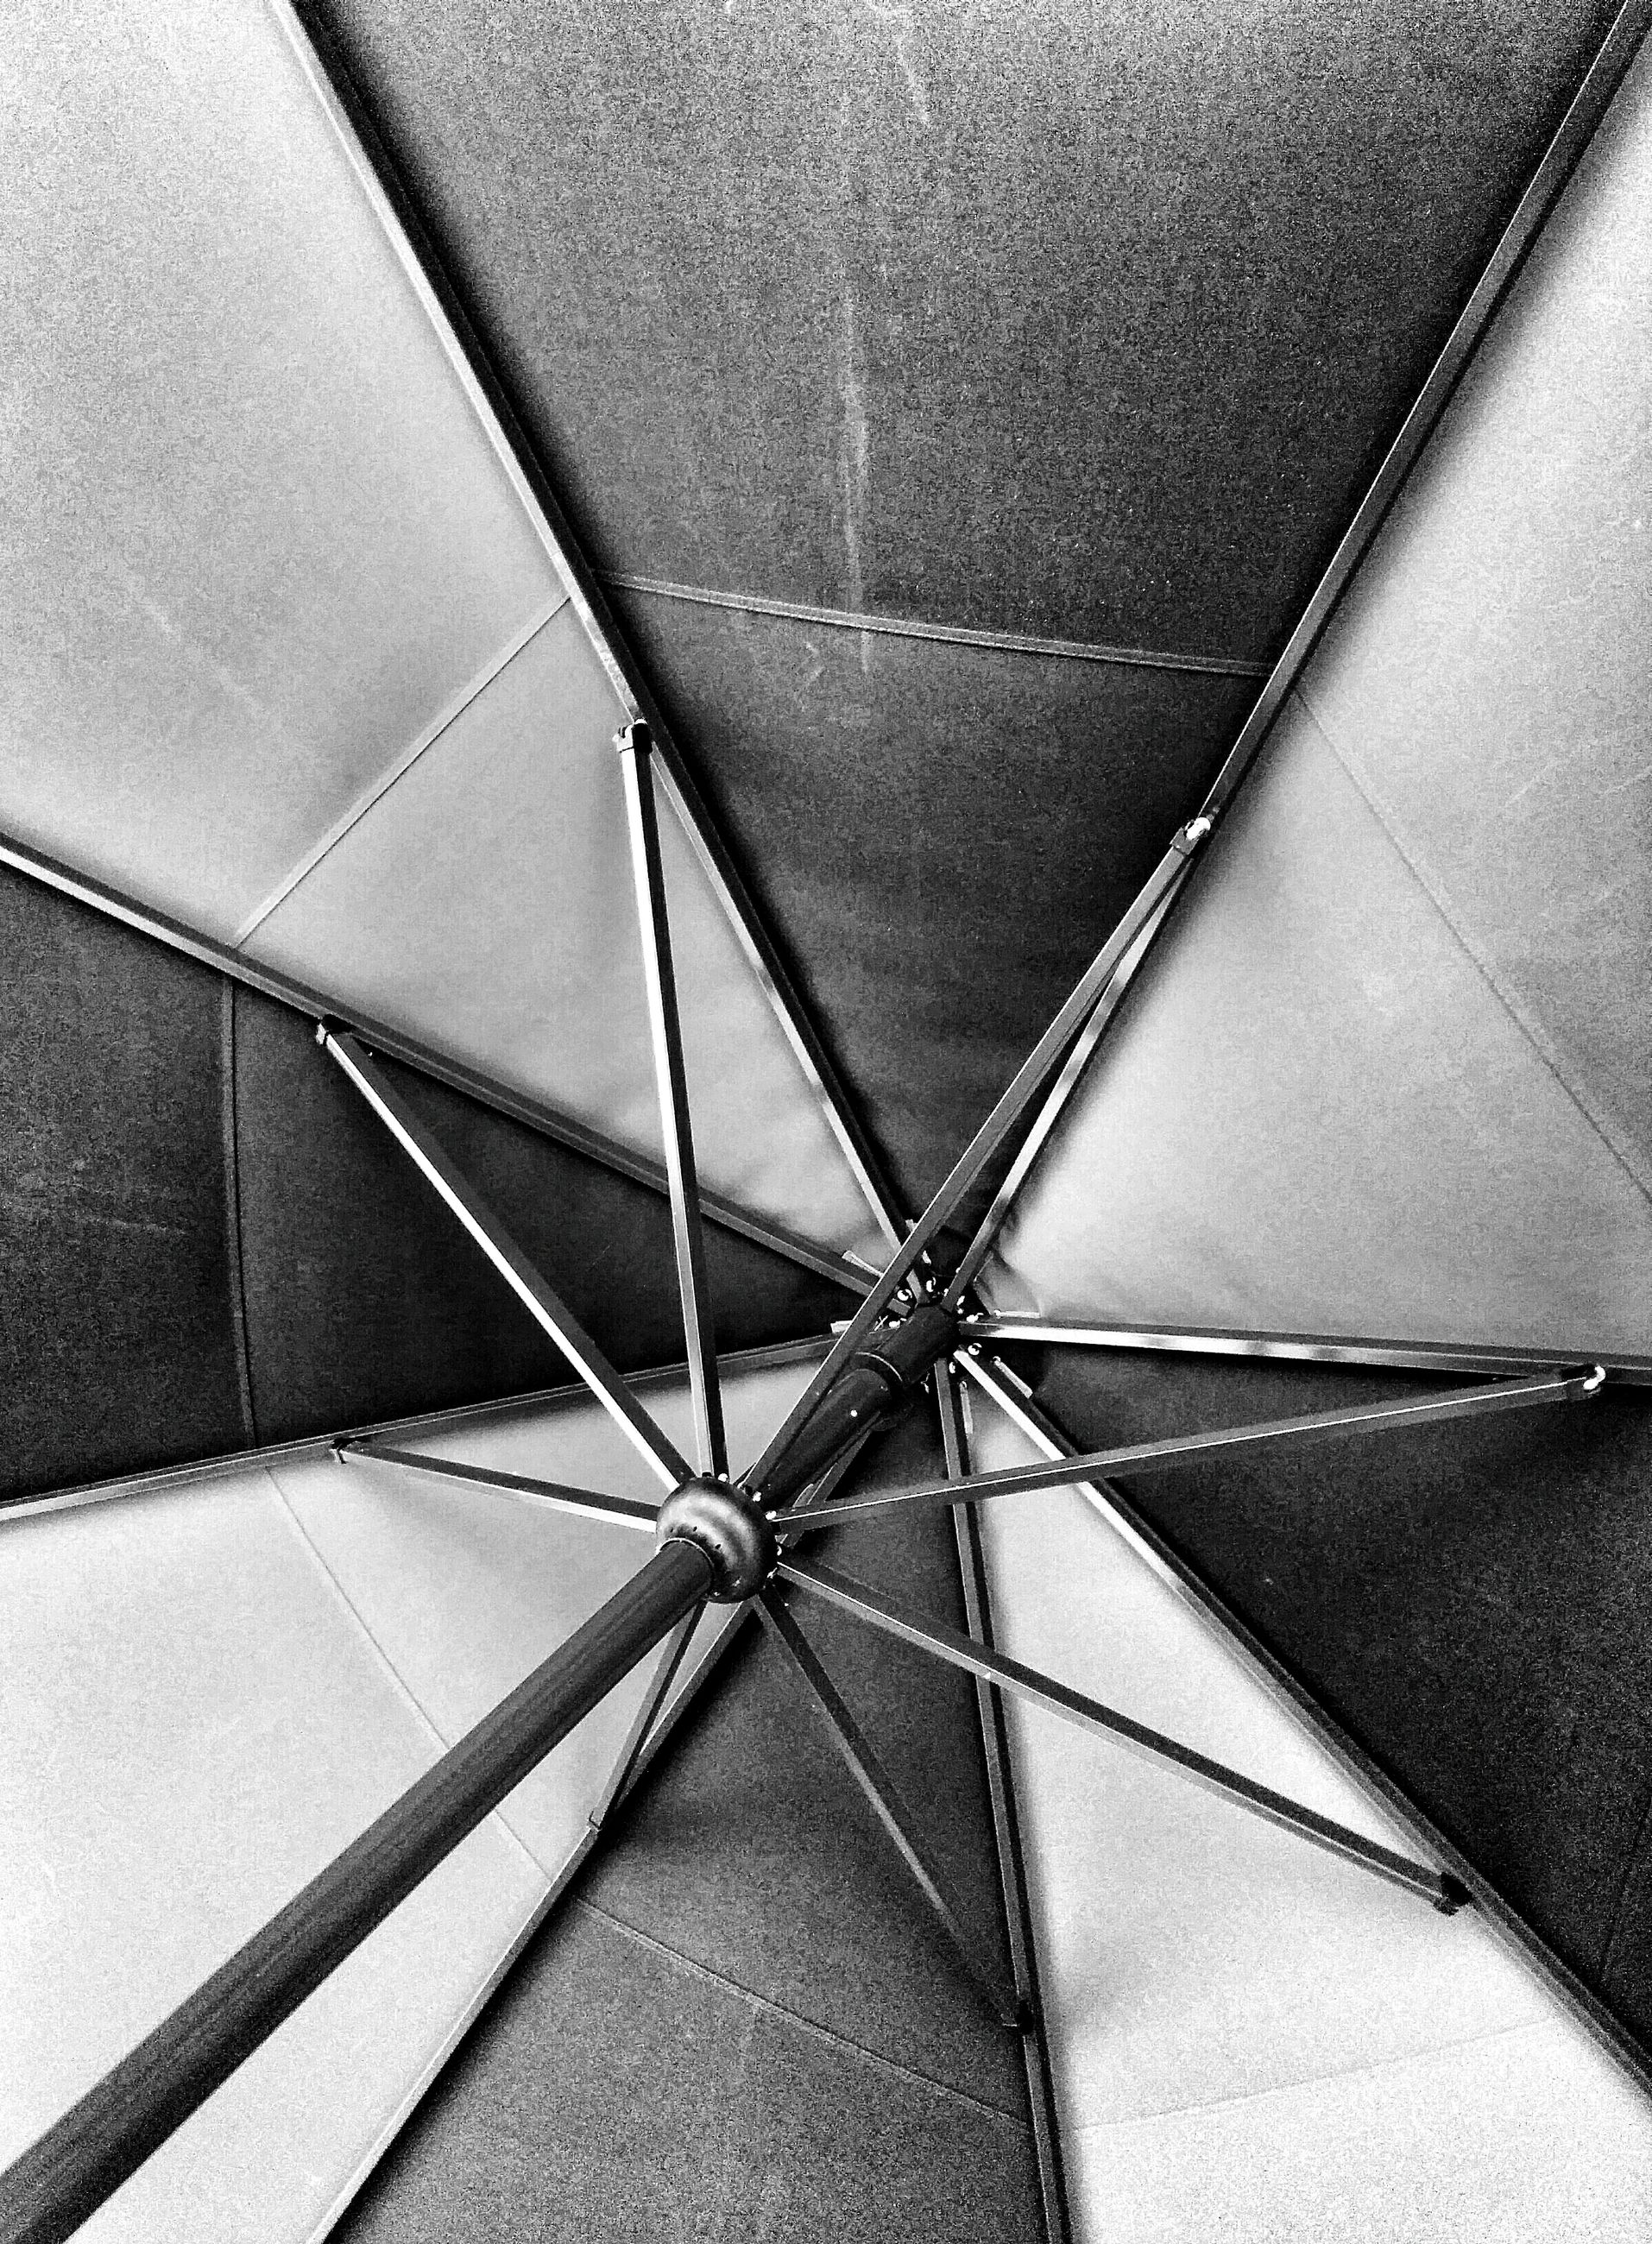 indoors, architecture, built structure, pattern, ceiling, full frame, backgrounds, design, geometric shape, low angle view, directly below, modern, high angle view, no people, day, textured, architectural feature, diminishing perspective, shape, close-up